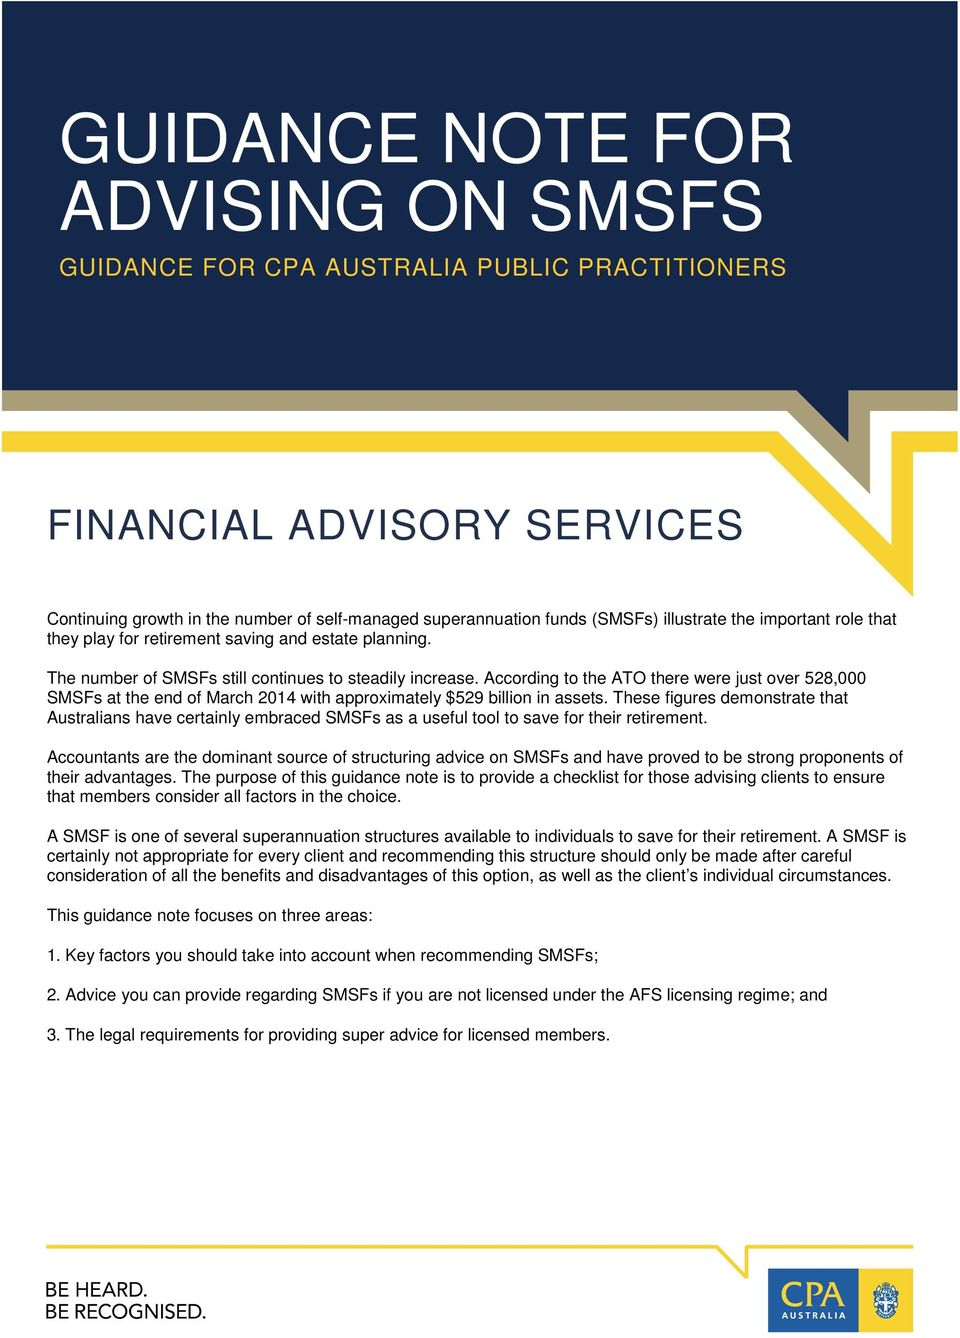 According to the ATO there were just over 528,000 SMSFs at the end of March 2014 with approximately $529 billion in assets.